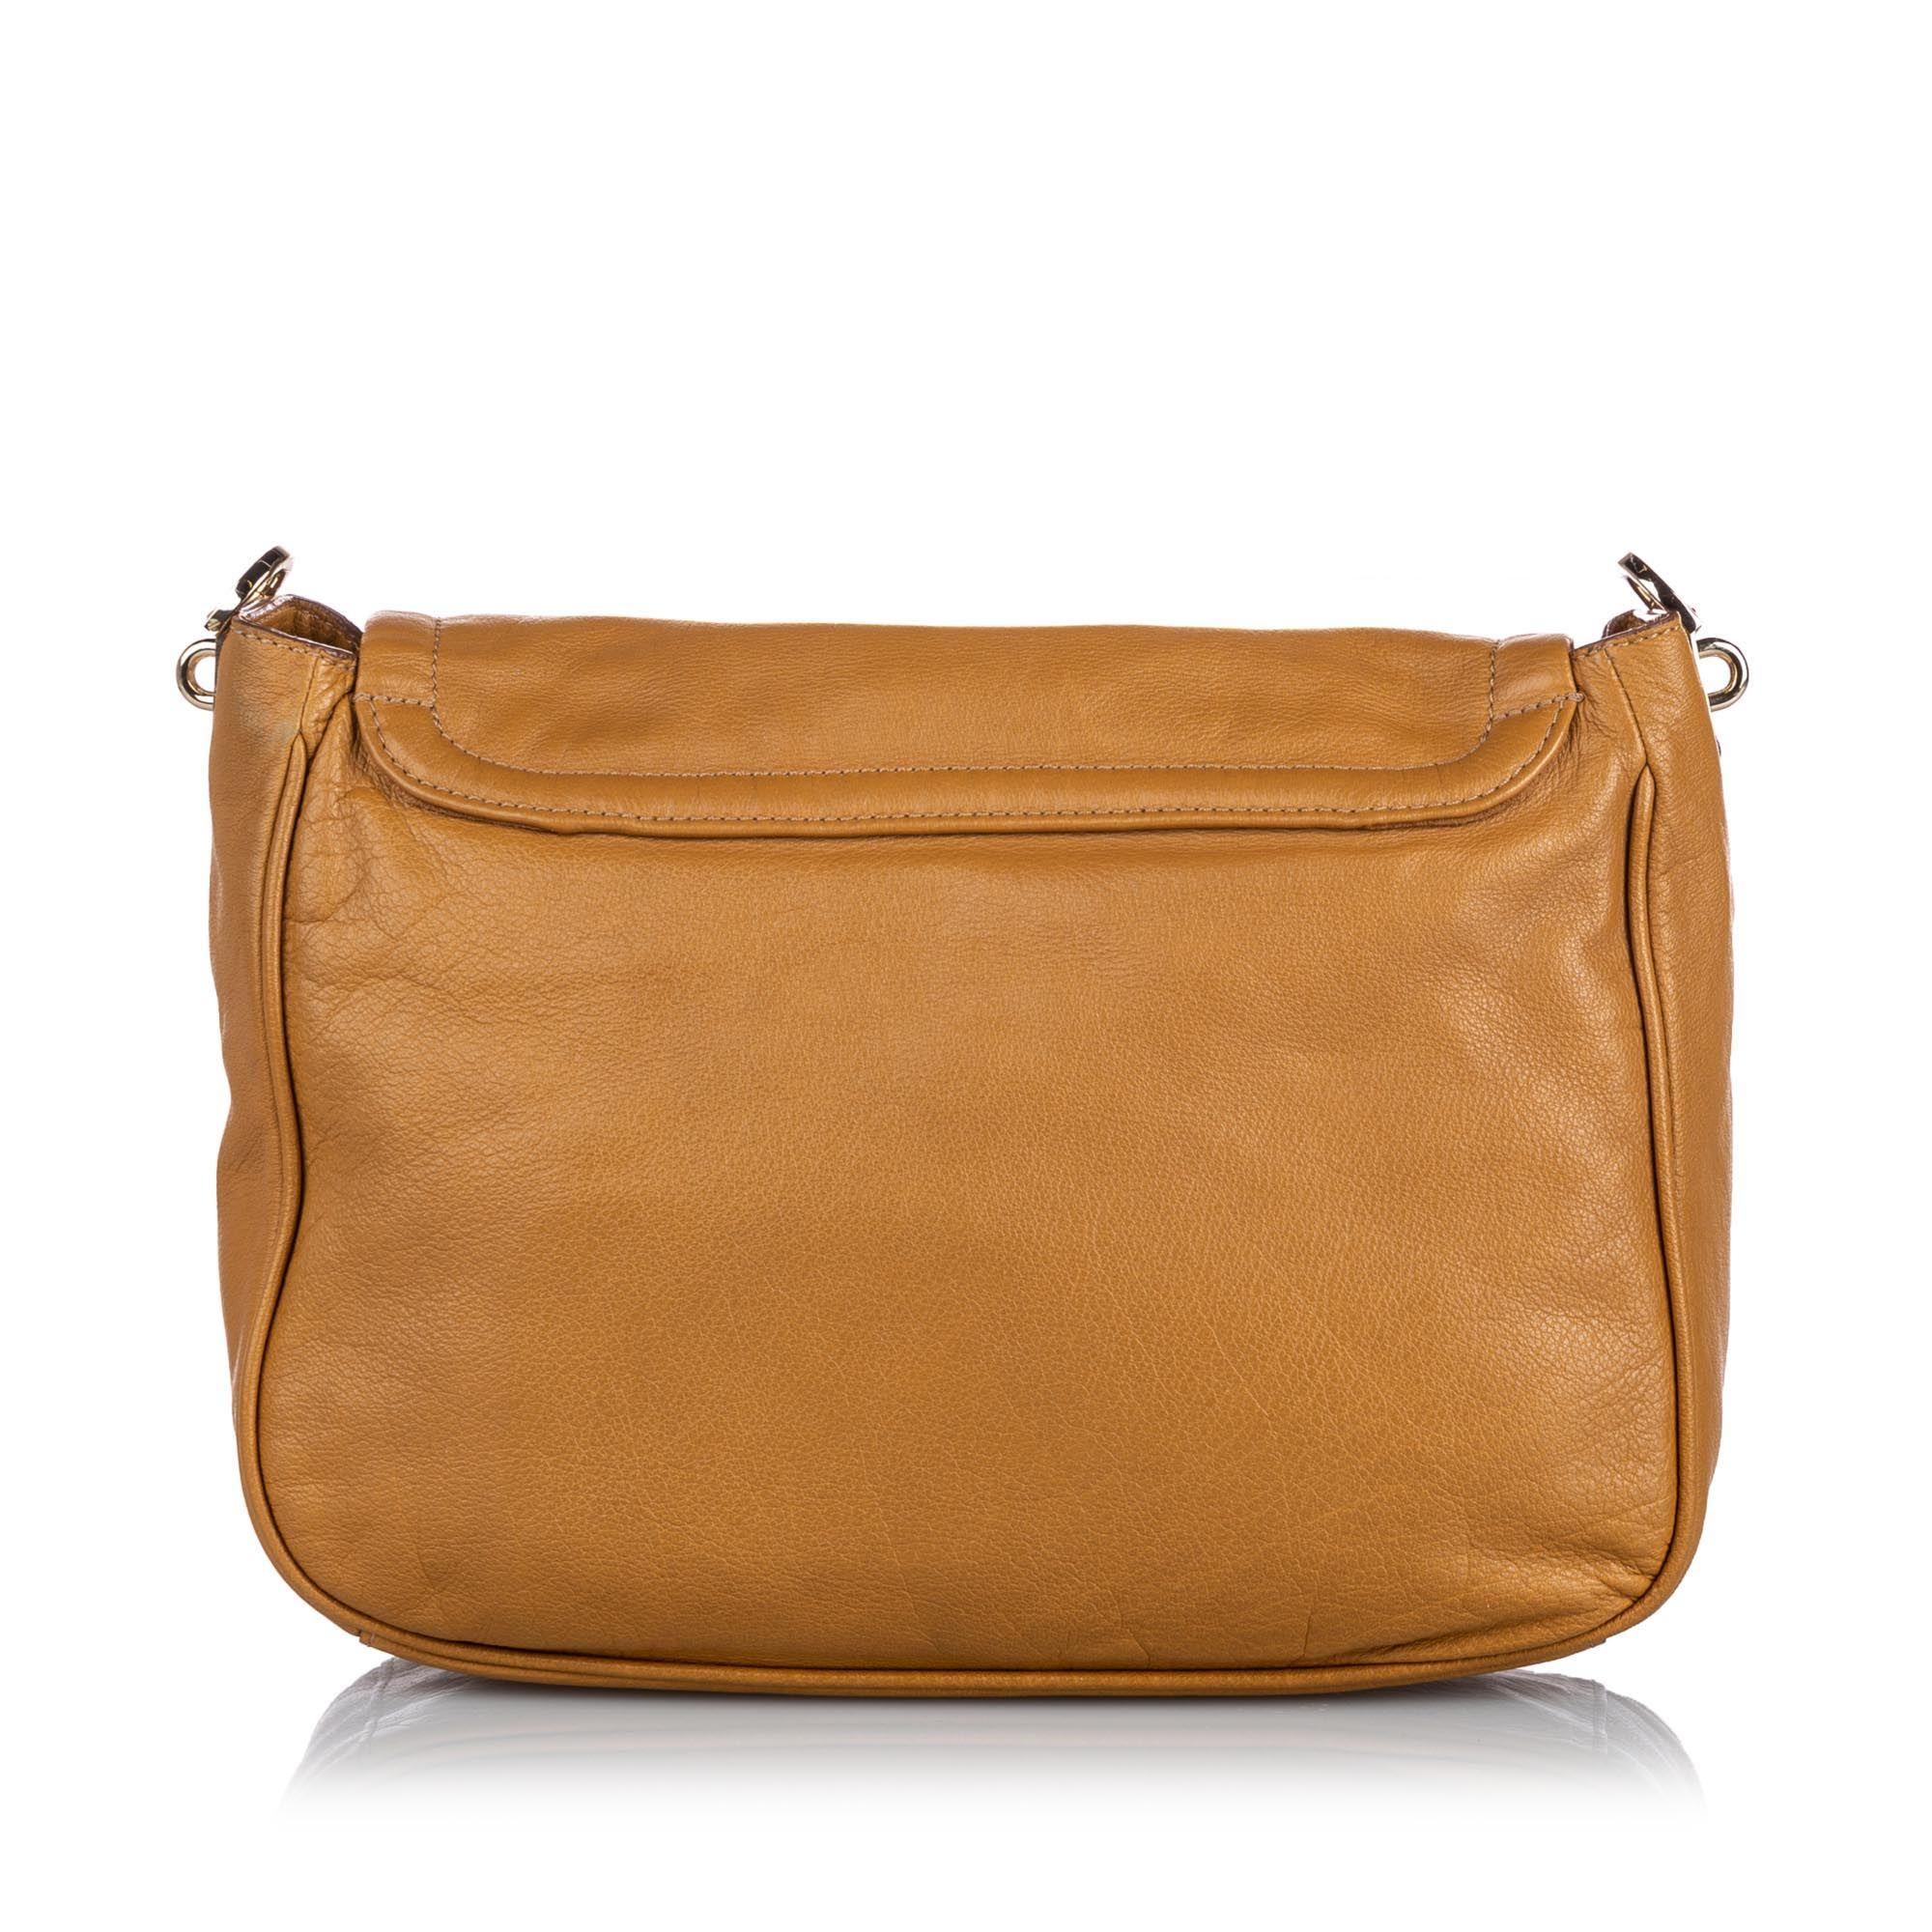 Vintage Mulberry Leather Crossbody Bag Brown